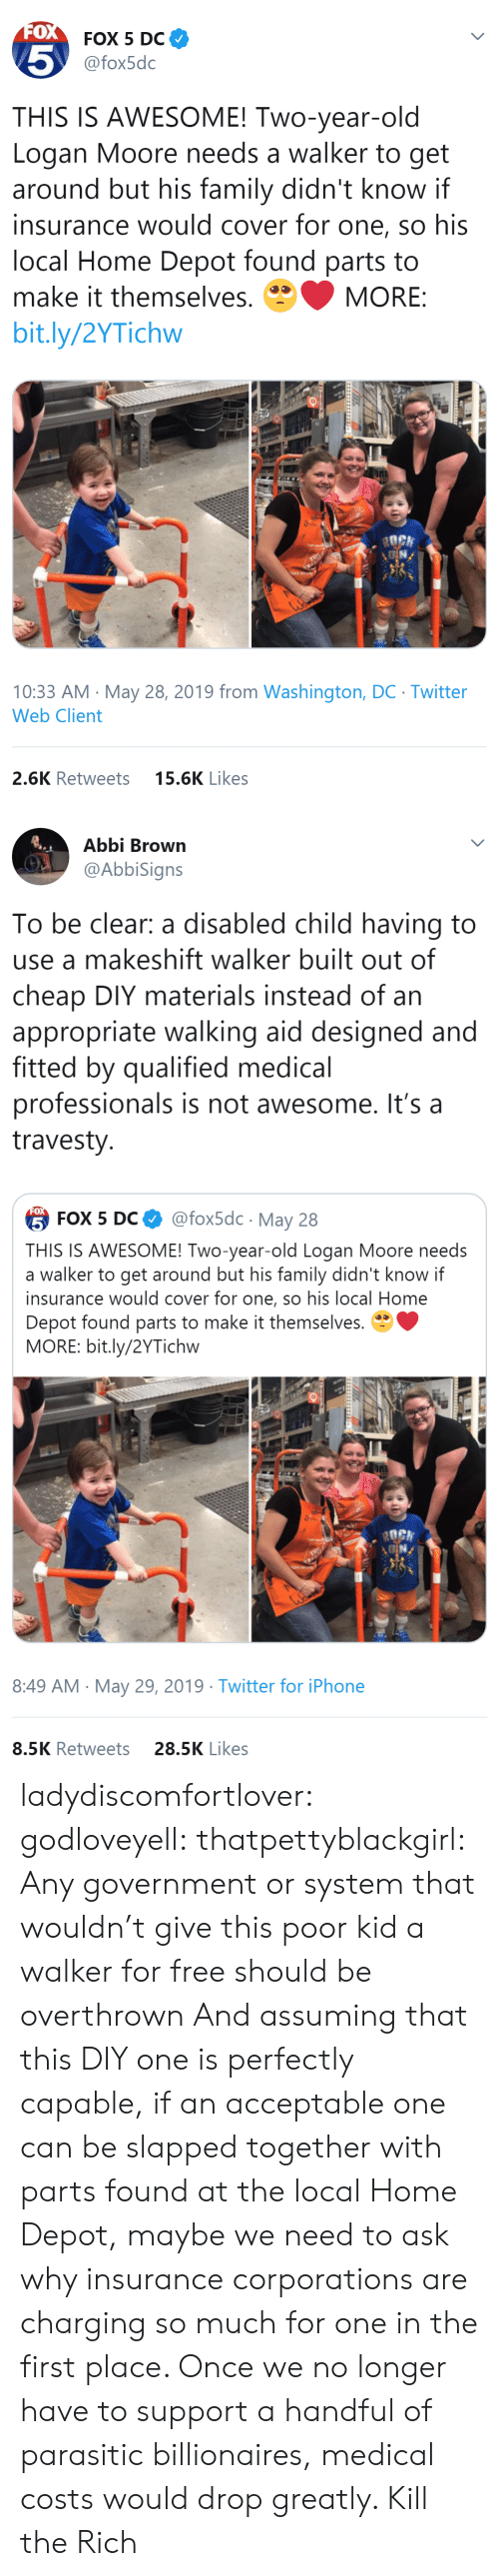 appropriate: FOX  FOX 5 DC  5  @fox5dc  THIS IS AWESOME! Two-year-old  Logan Moore needs a walker to get  around but his family didn't know if  insurance would cover for one, so his  local Home Depot found parts to  make it themselves.  MORE:  bit.ly/2YTichw  10:33 AM May 28, 2019 from Washington, DC Twitter  Web Client  15.6K Likes  2.6K Retweets   Abbi Brown  @AbbiSigns  To be clear: a disabled child having to  use a makeshift walker built out of  cheap DIY materials instead of an  appropriate walking aid designed and  fitted by qualified medical  professionals is not awesome. It's a  travesty  FOX  @fox5dc May 28  5 FOX 5 DС  THIS IS AWESOME! Two-year-old Logan Moore needs  a walker to get around but his family didn't know if  insurance would cover for one, so his local Home  Depot found parts to make it themselves.  MORE: bit.ly/2YTichw  8:49 AM May 29, 2019 Twitter for iPhone  28.5K Likes  8.5K Retweets ladydiscomfortlover: godloveyell:  thatpettyblackgirl:  Any government or system that wouldn't give this poor kid a walker for free should be overthrown   And assuming that this DIY one is perfectly capable, if an acceptable one can be slapped together with parts found at the local Home Depot, maybe we need to ask why insurance corporations are charging so much for one in the first place.  Once we no longer have to support a handful of parasitic billionaires, medical costs would drop greatly.    Kill the Rich